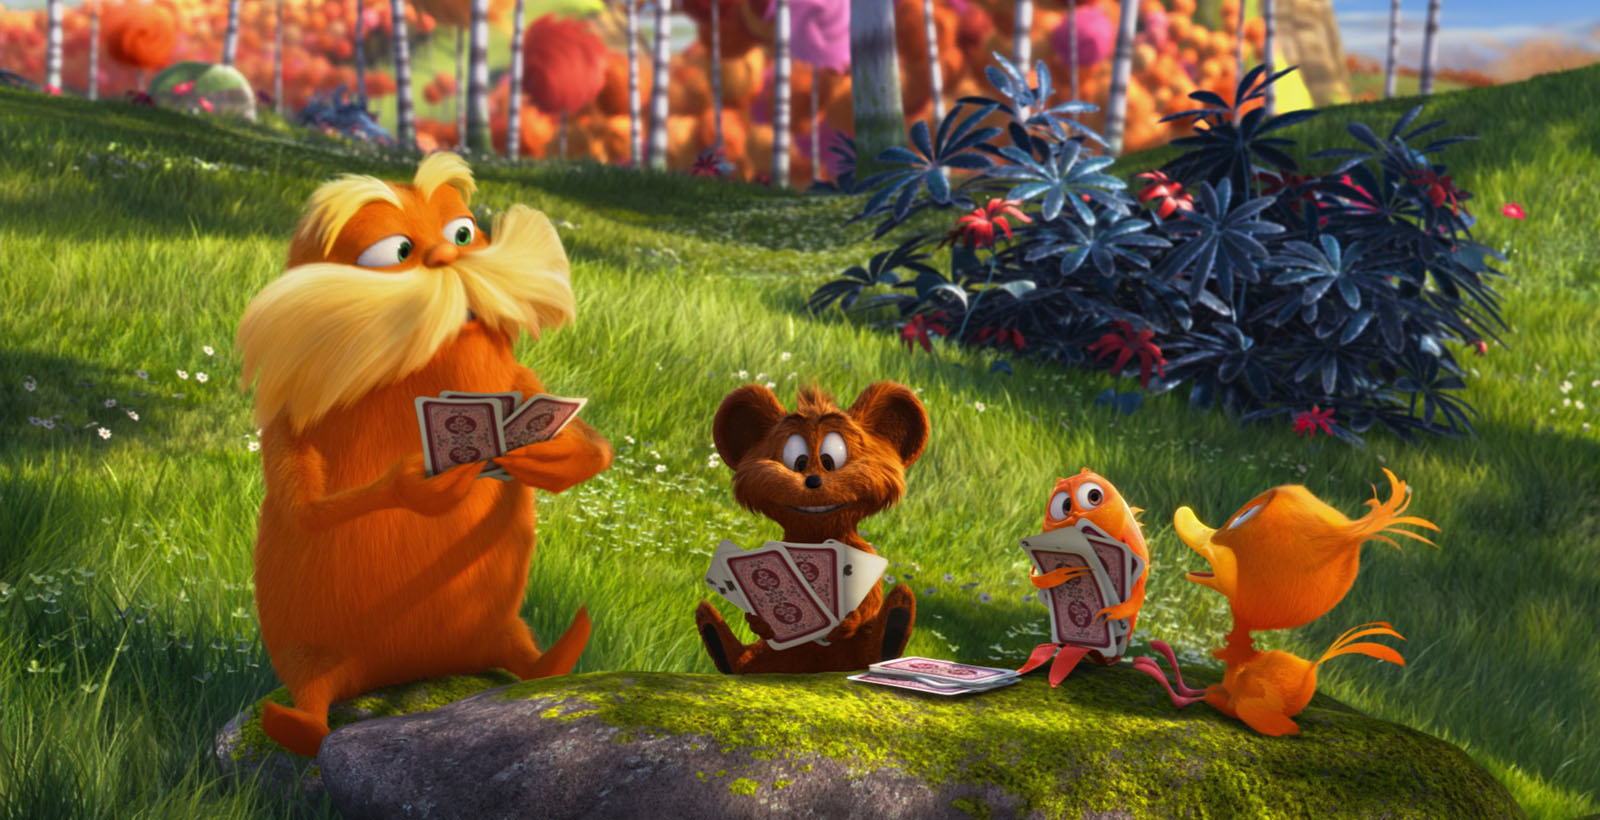 LE LORAX - The Lorax Illumination Entertainment Mac Guff Movie film 2012 Image 1 - Go with the Blog